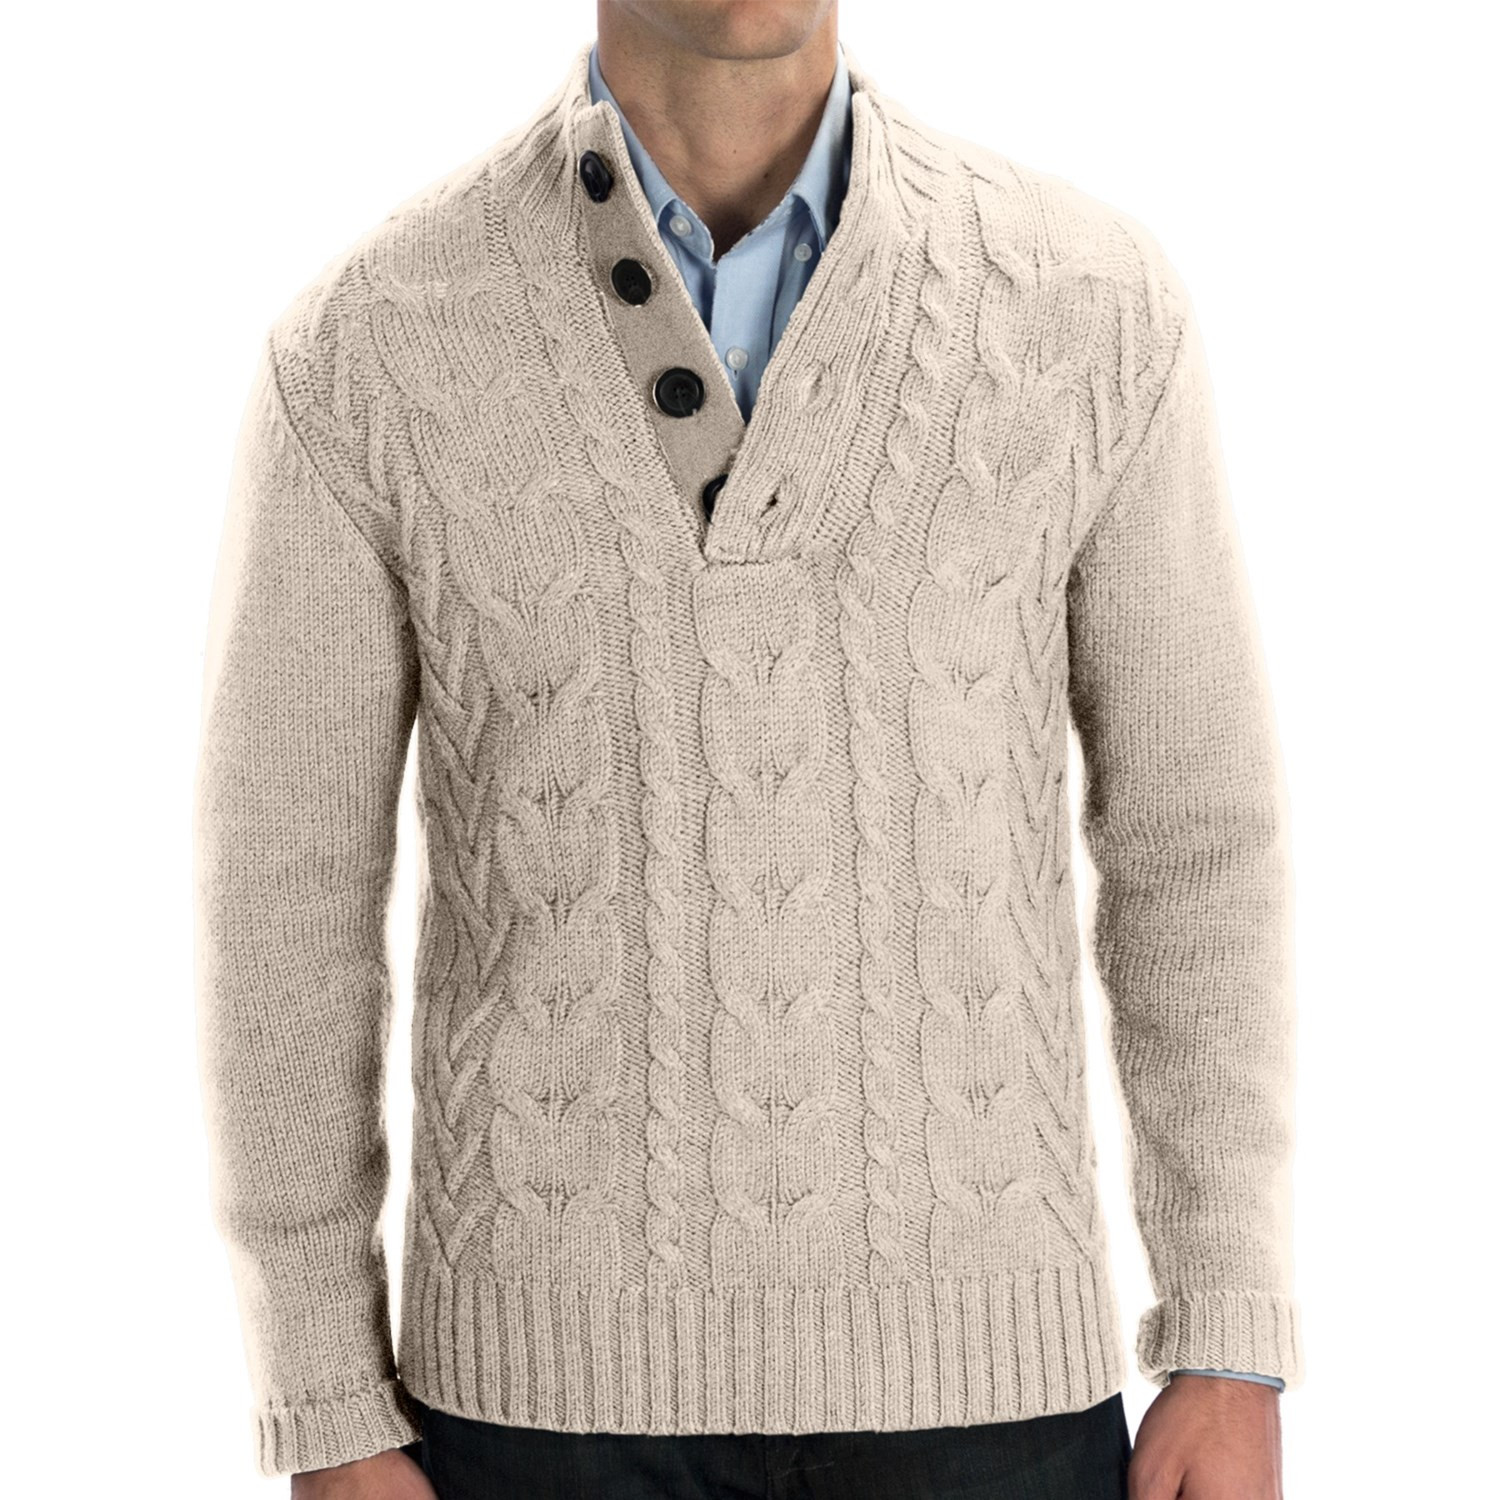 Fresh Cable Knit Sweaters Patterns for Men Mens Patterned Cardigan Of Charming 50 Models Mens Patterned Cardigan